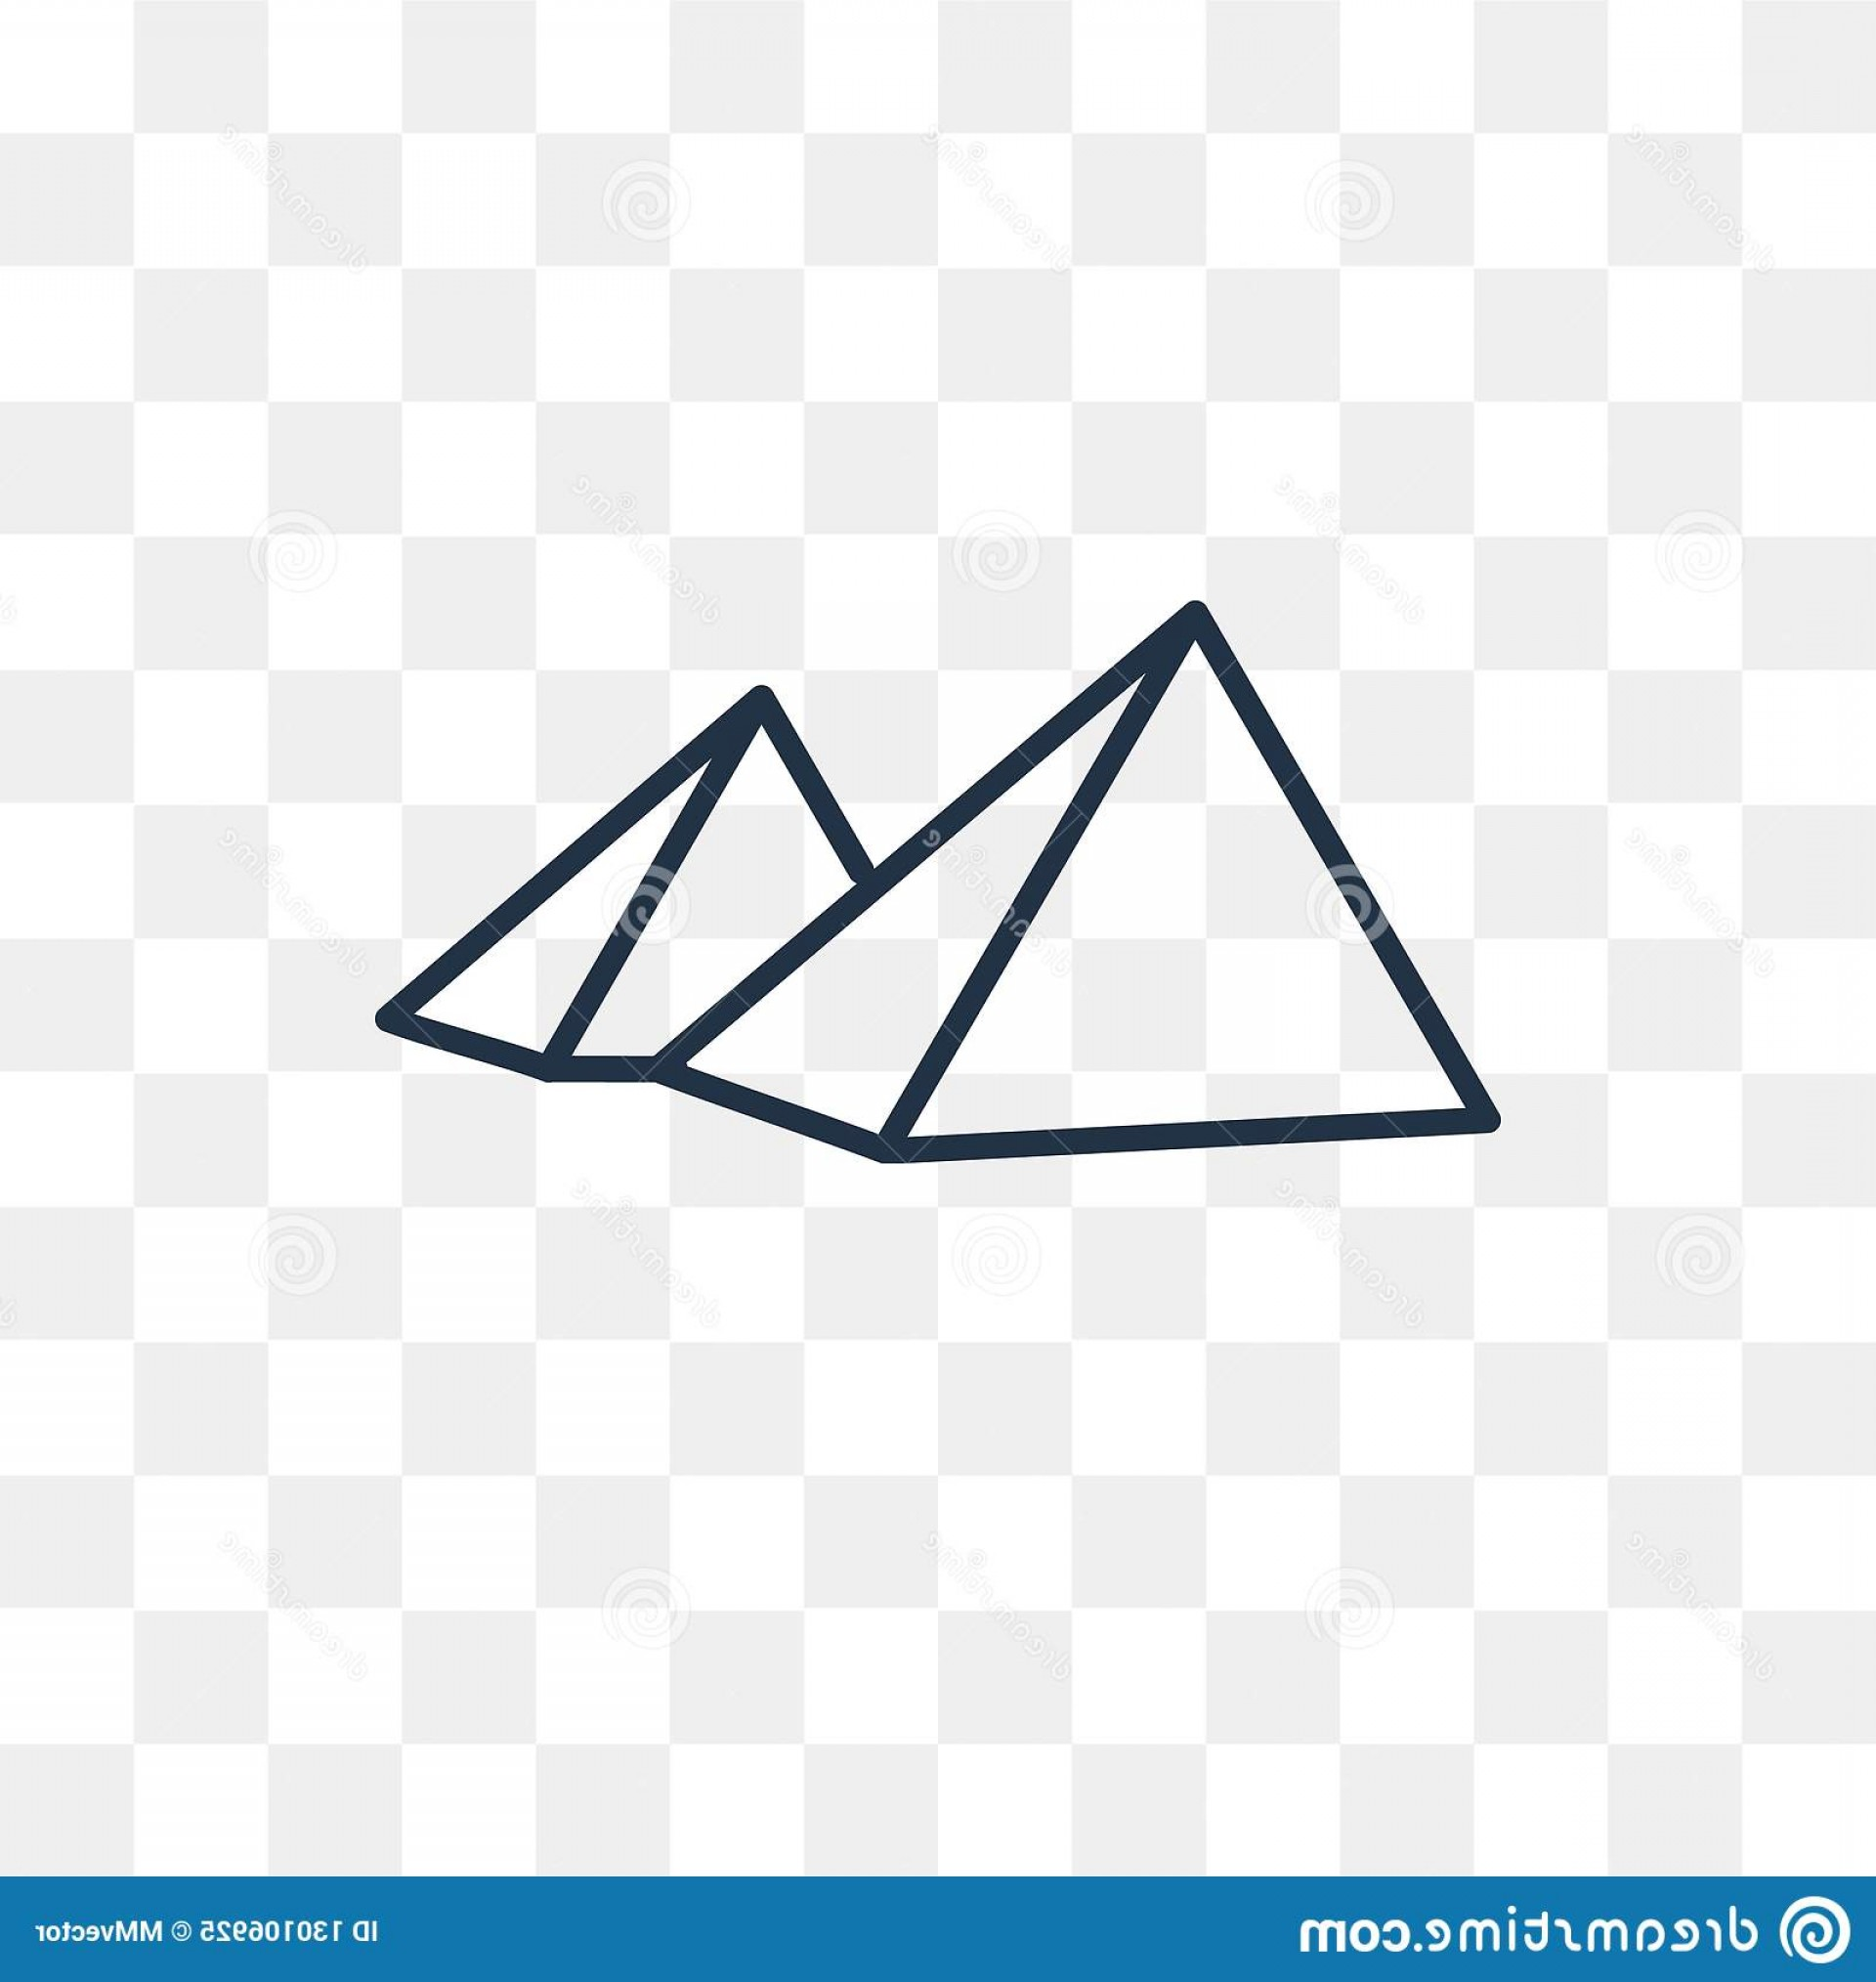 Piramids Vector Art: Pyramids Vector Icon Isolated Transparent Background Linear Outline High Quality Transparency Concept Can Be Used Web Image